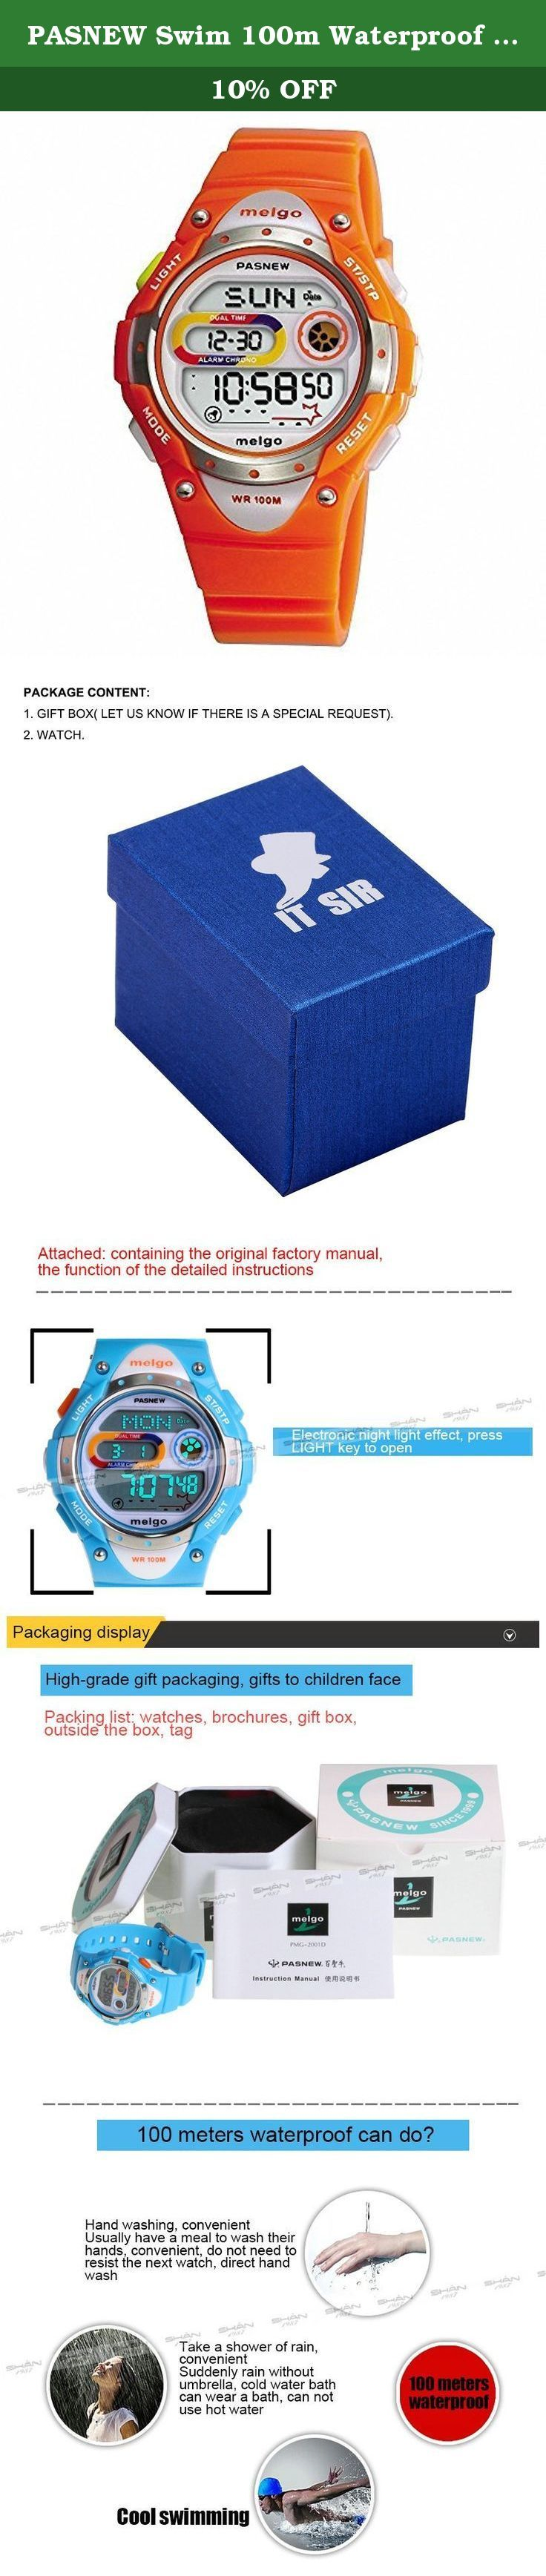 PASNEW Swim 100m Waterproof Outdoor Sport Fashion Digital Wrist Watch Girl Boy Gift Full-function Luminous Orange Alarm Clock. Guangzhou Pasnew Industrial Co. Ltd. is a comprehensive company for the development, manufacture and marketing of fashion sport watches. As one of 'Famous Companies Guangdong Province', Pasnew always focouses on quality and design, and licensed as Manufacture of Guangzhou Asian Game Souvenirs.